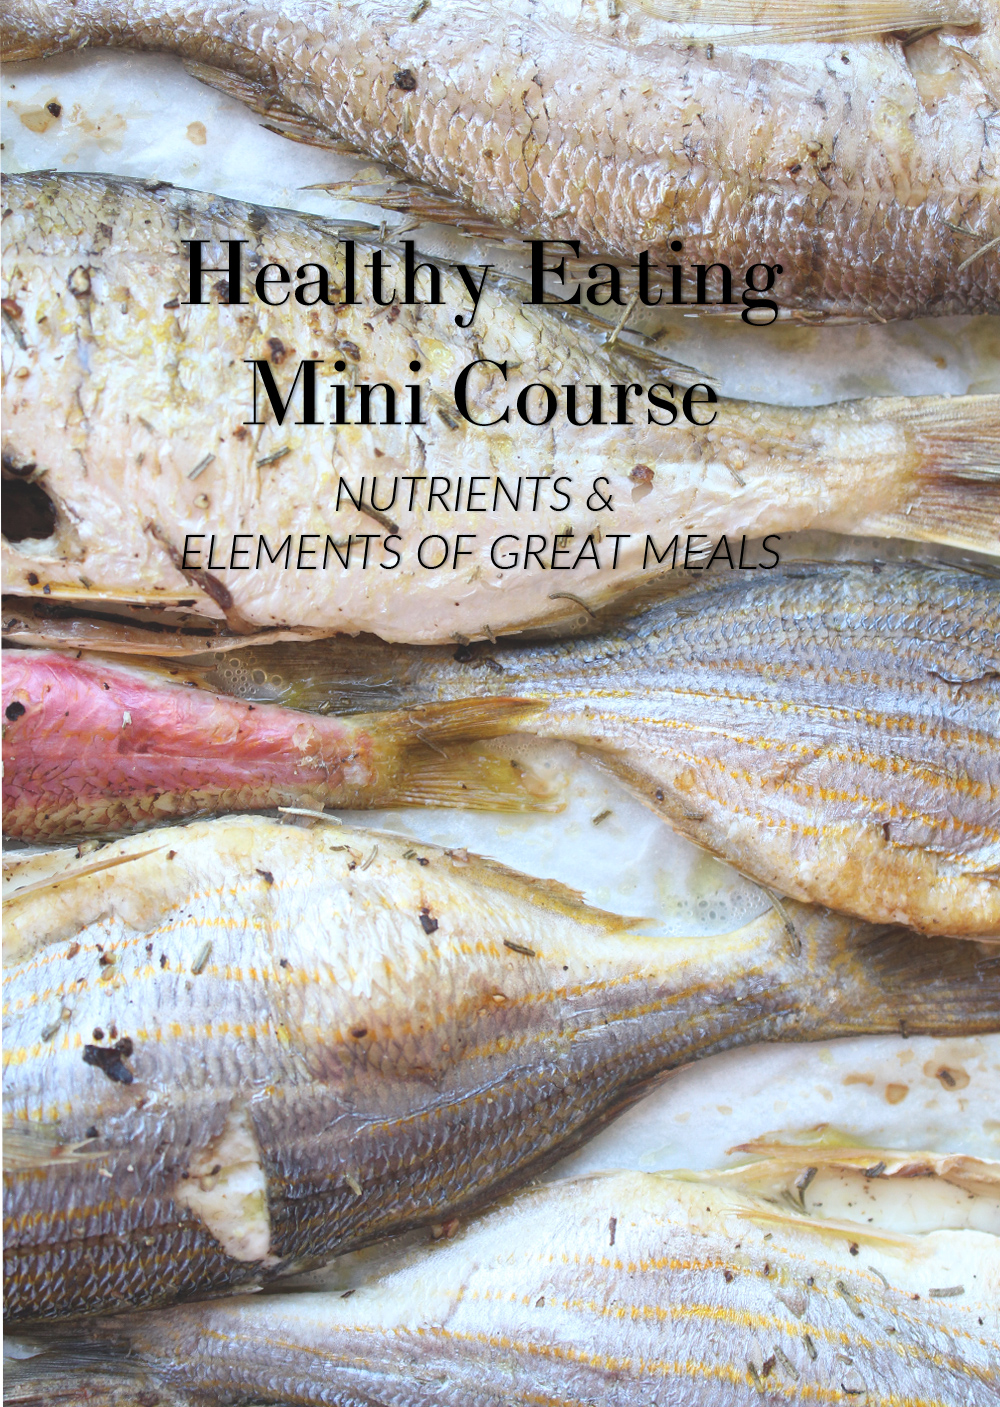 Healthy Eating Mini Course - lesson-02, Nutrients & Elements of Great Meals | by In Whirl of Inspiration